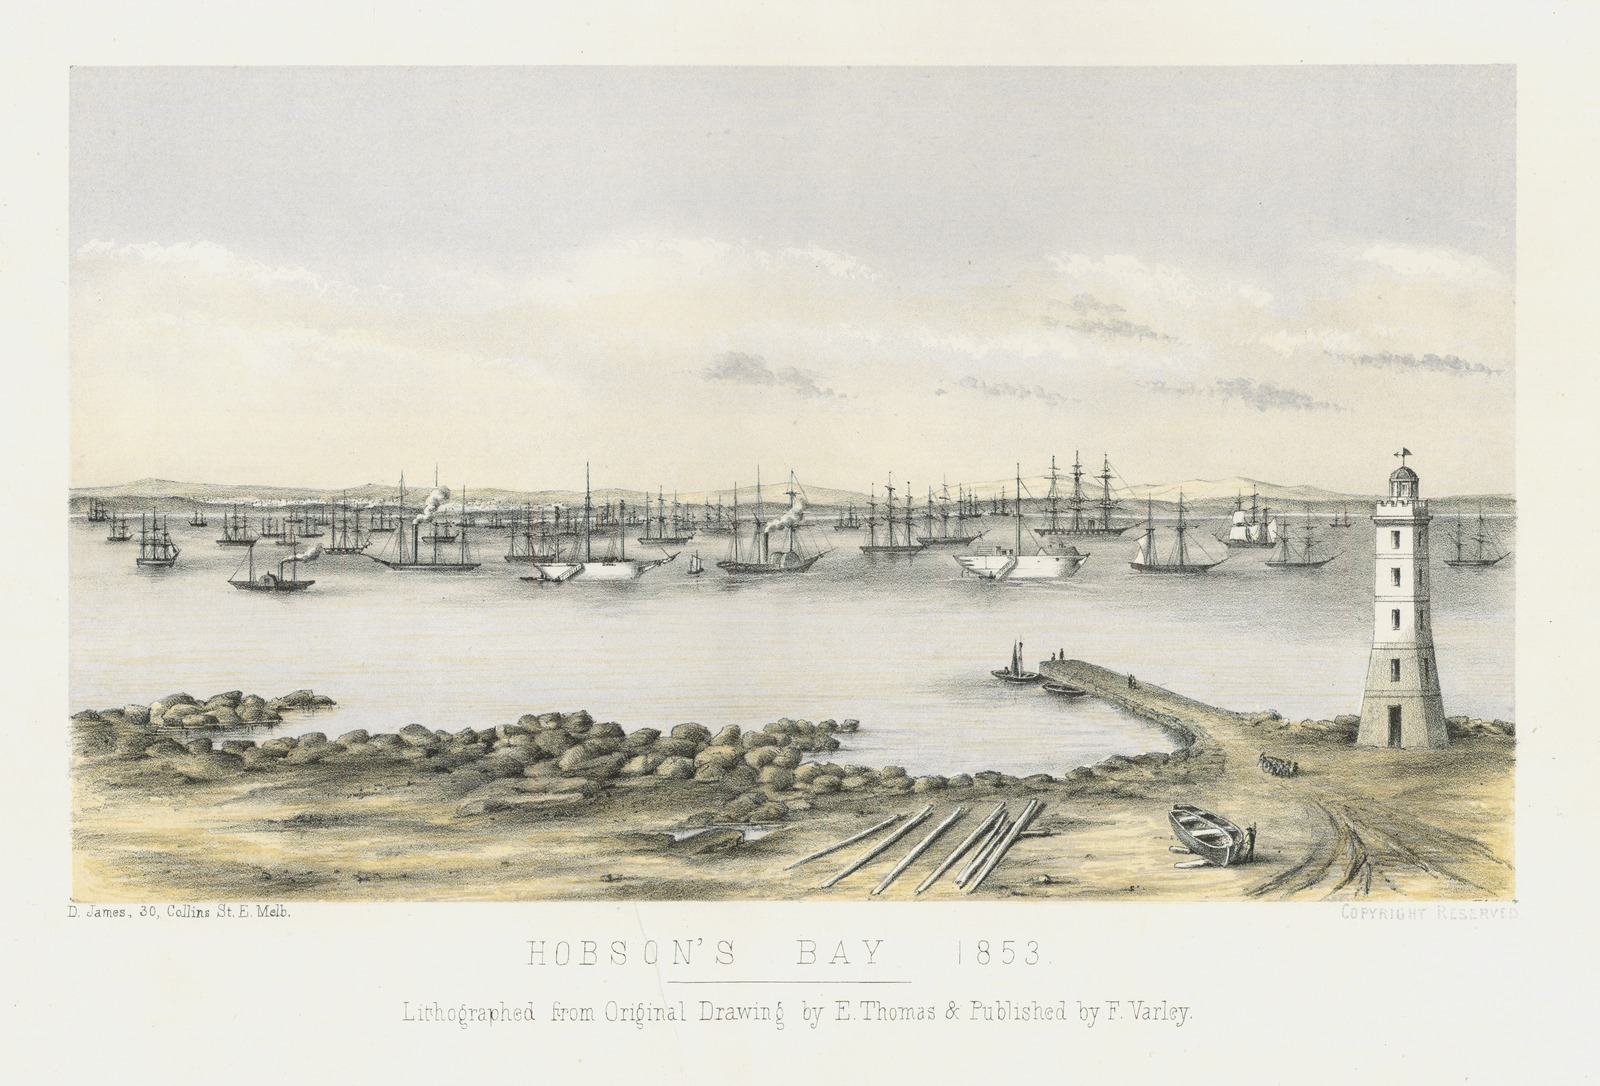 """Hobsons Bay"" Lithograph image courtesy of the Williamstown Historical Society"